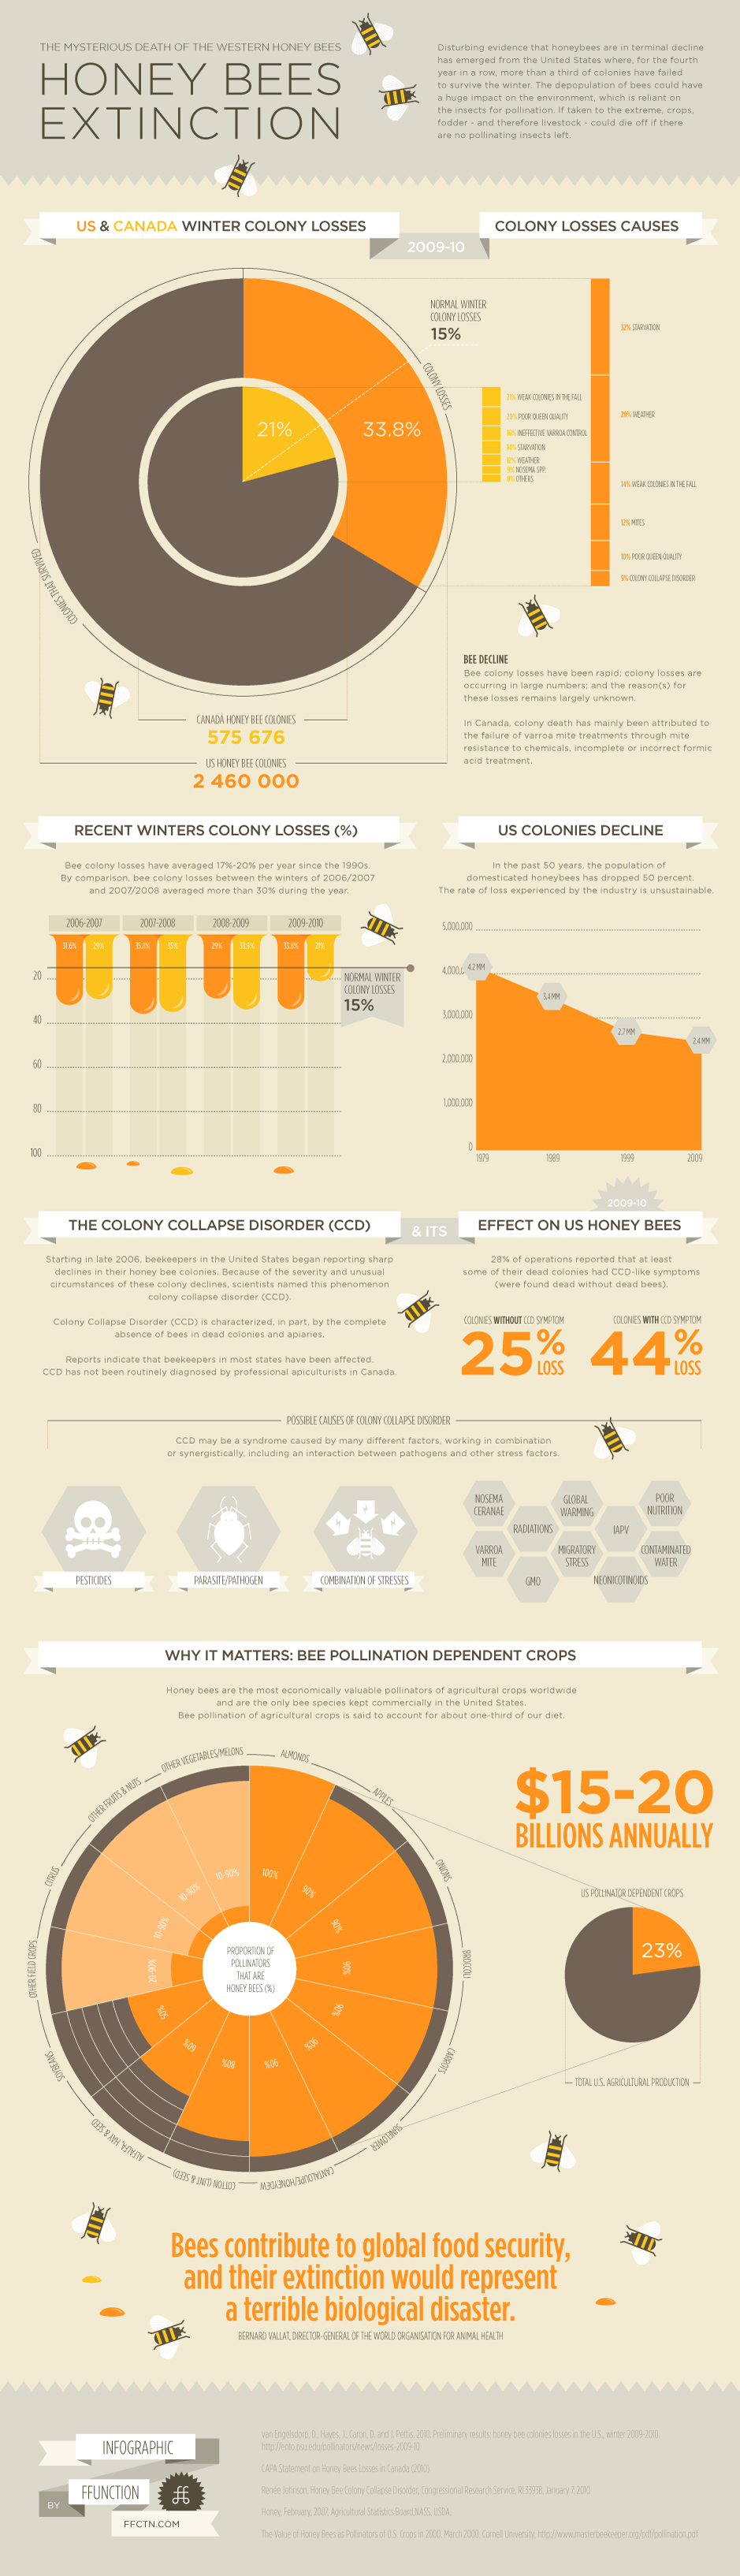 infographic-honeybees-full.png